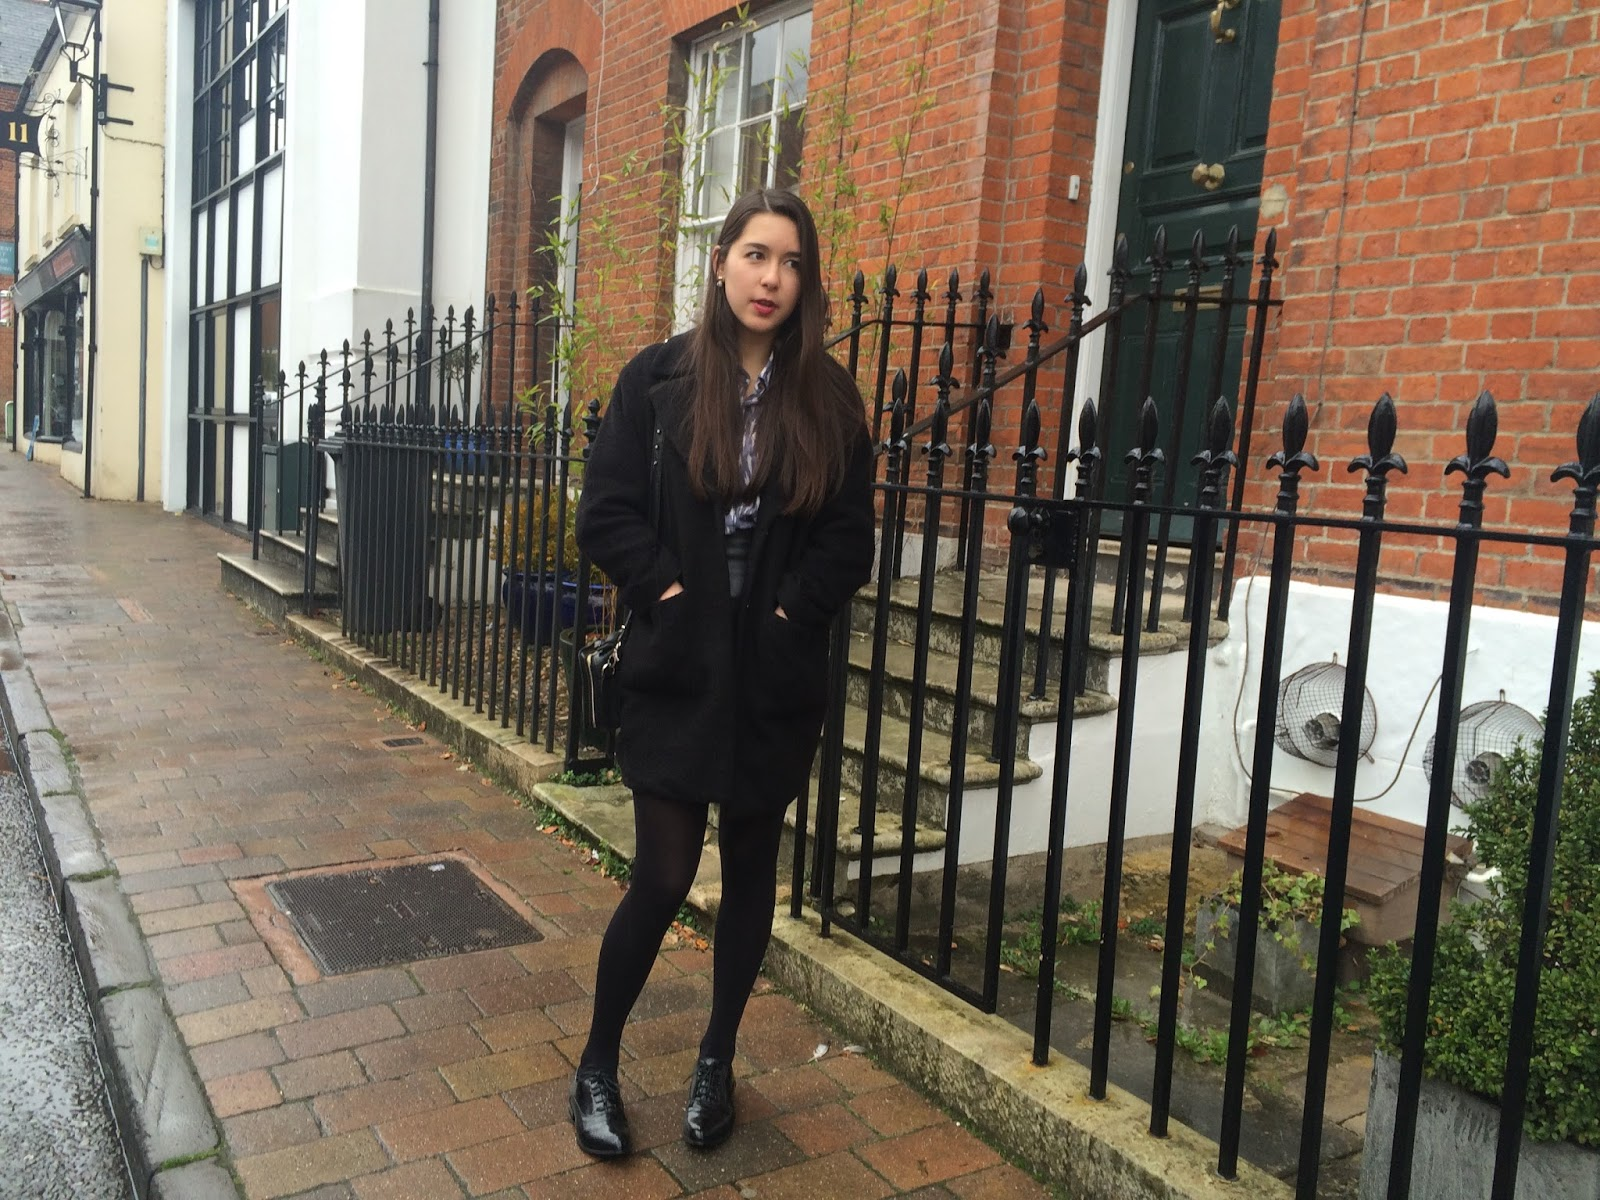 ootd, street style, blogger, autumn, skirt, coat, brogues, box bag